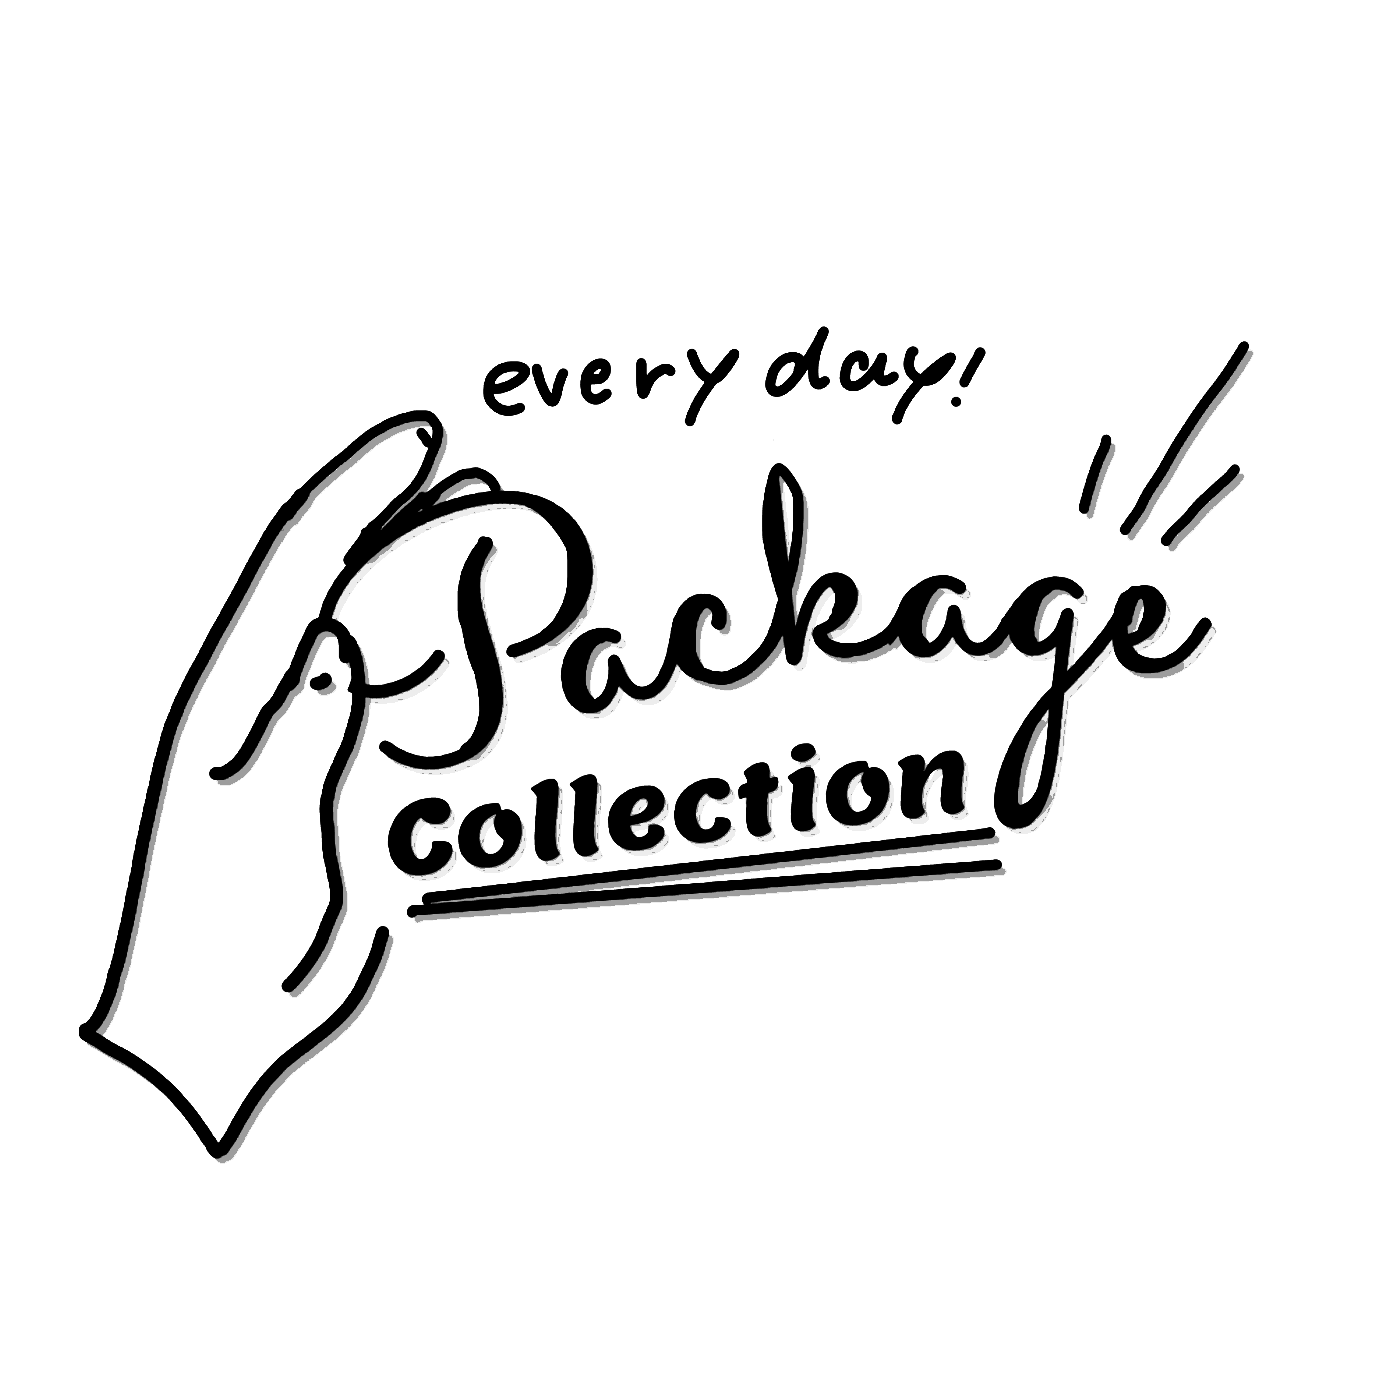 packagecollection